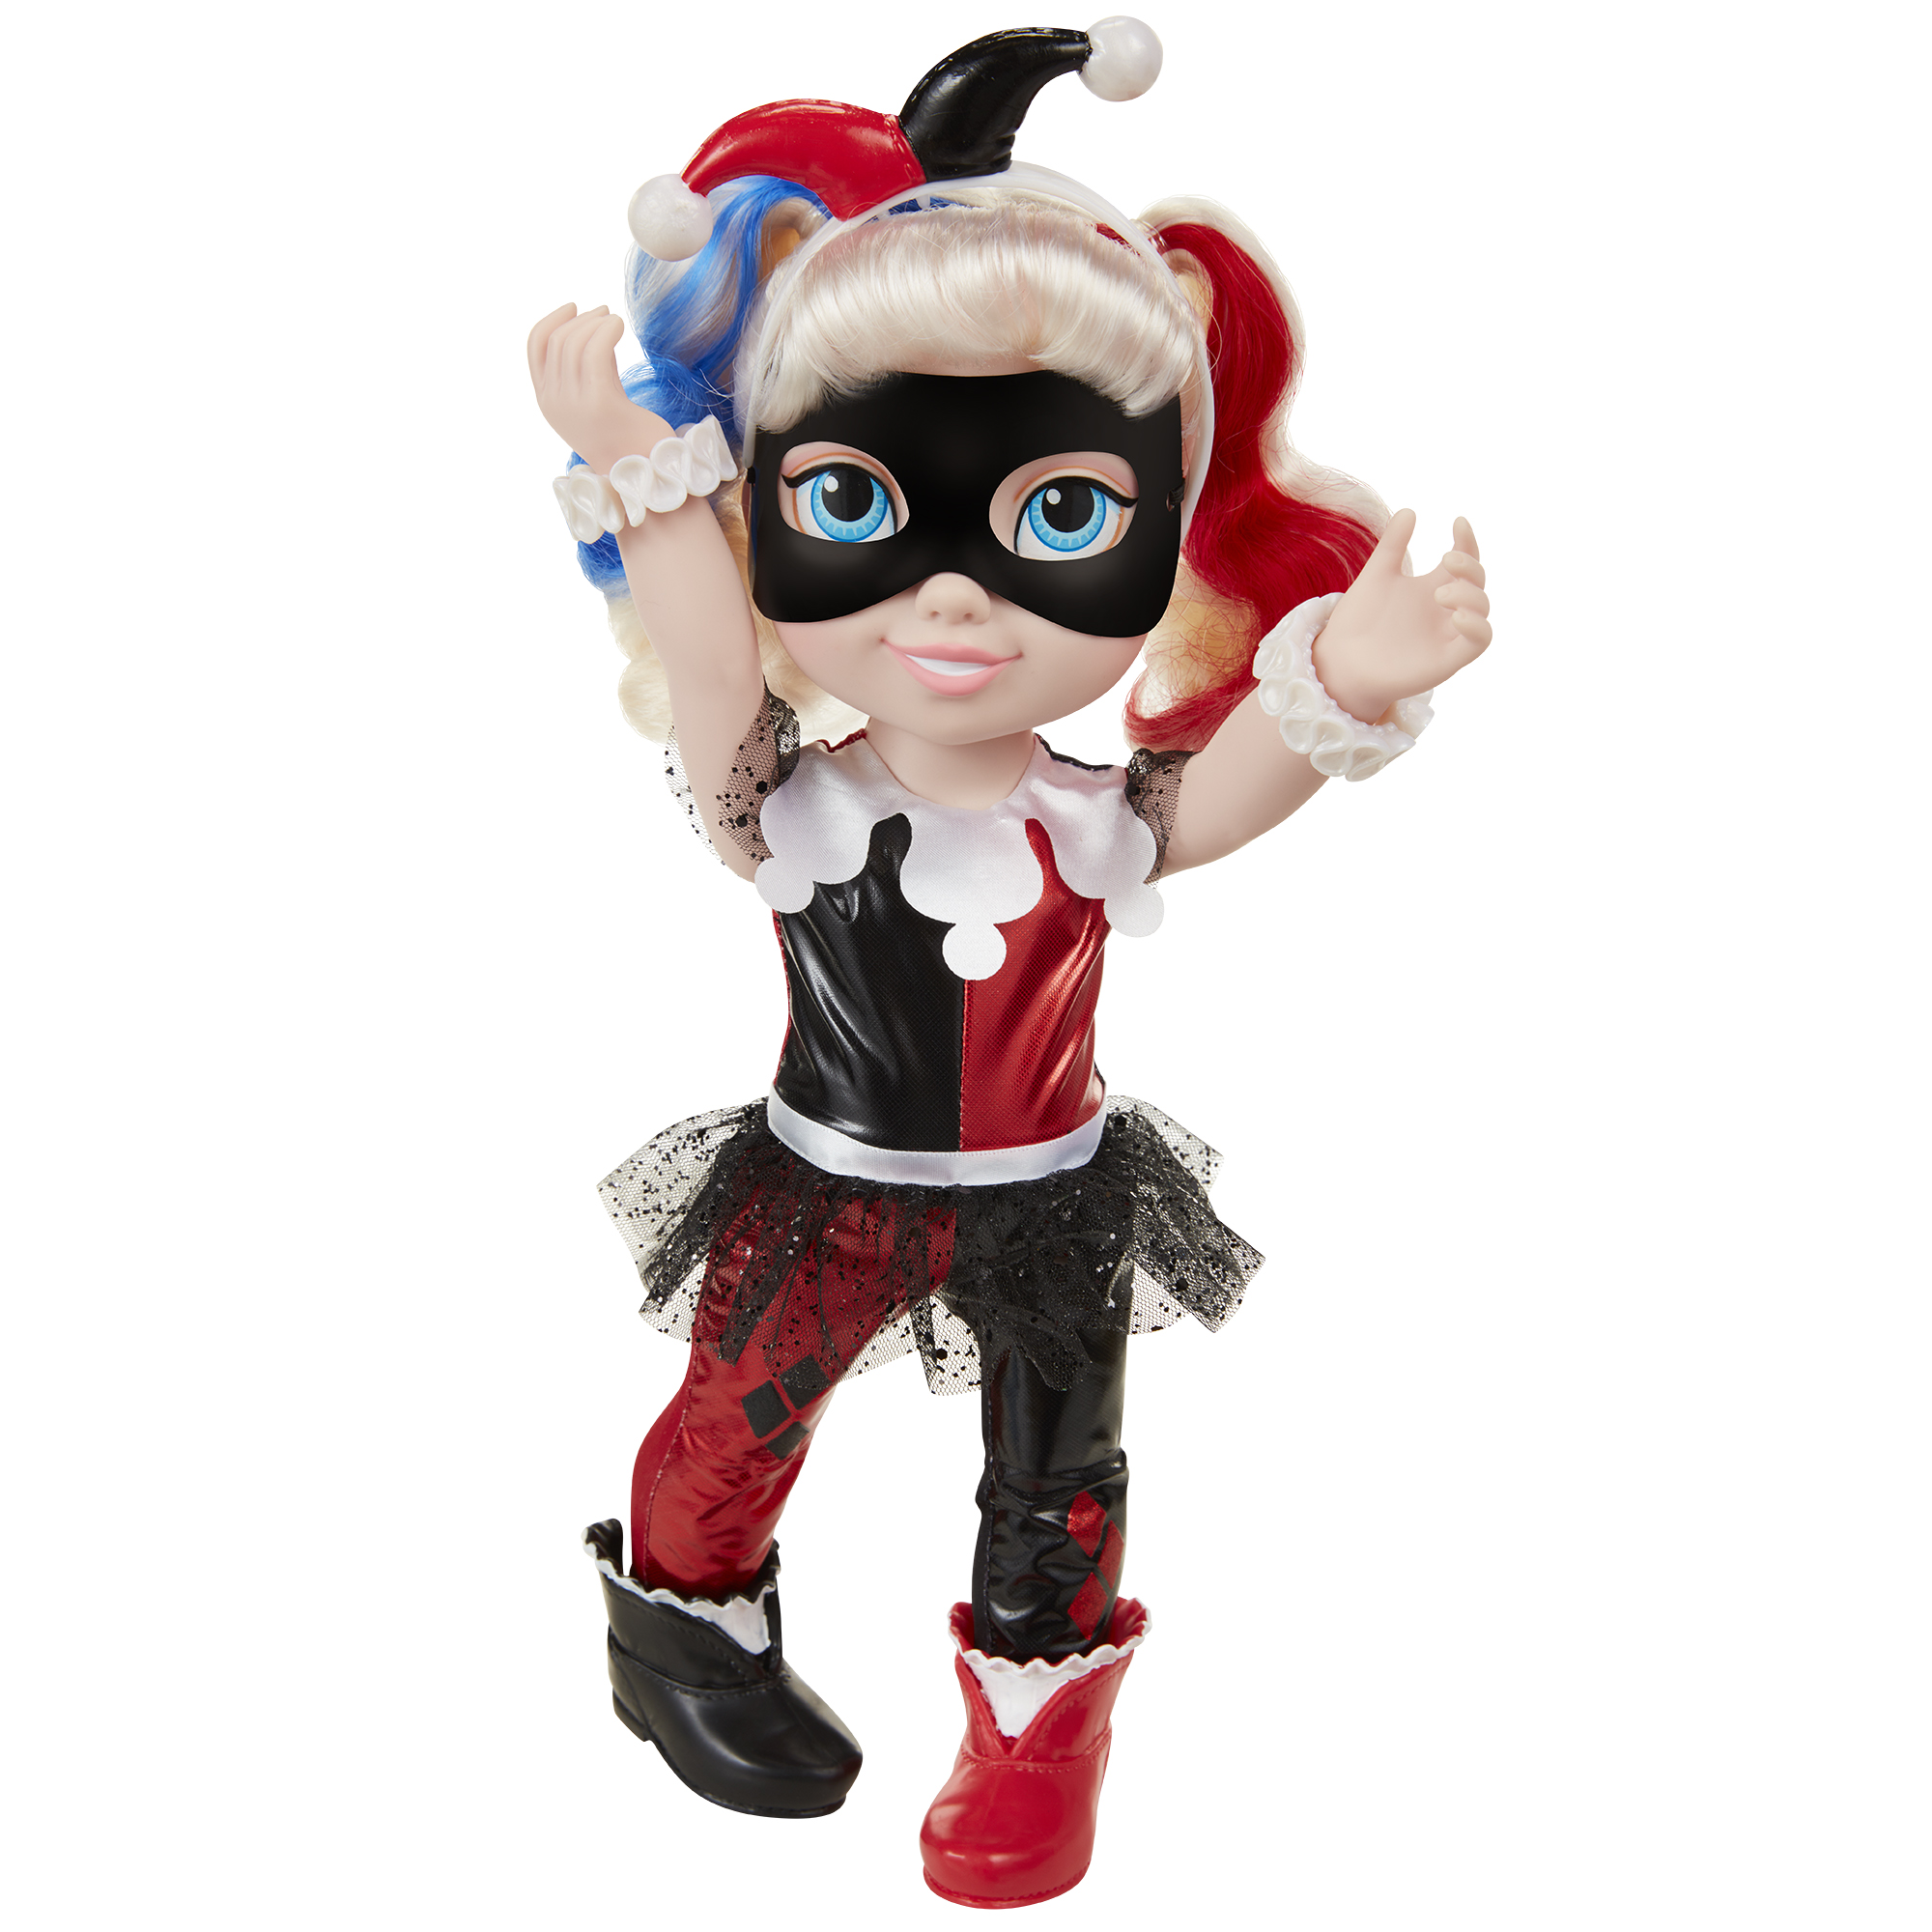 DC Superhero Girls 15 Harley Quinn Toddler Doll Gorgeous Rooted Hair Signature Iconic Outfit Includes 7 Pieces!